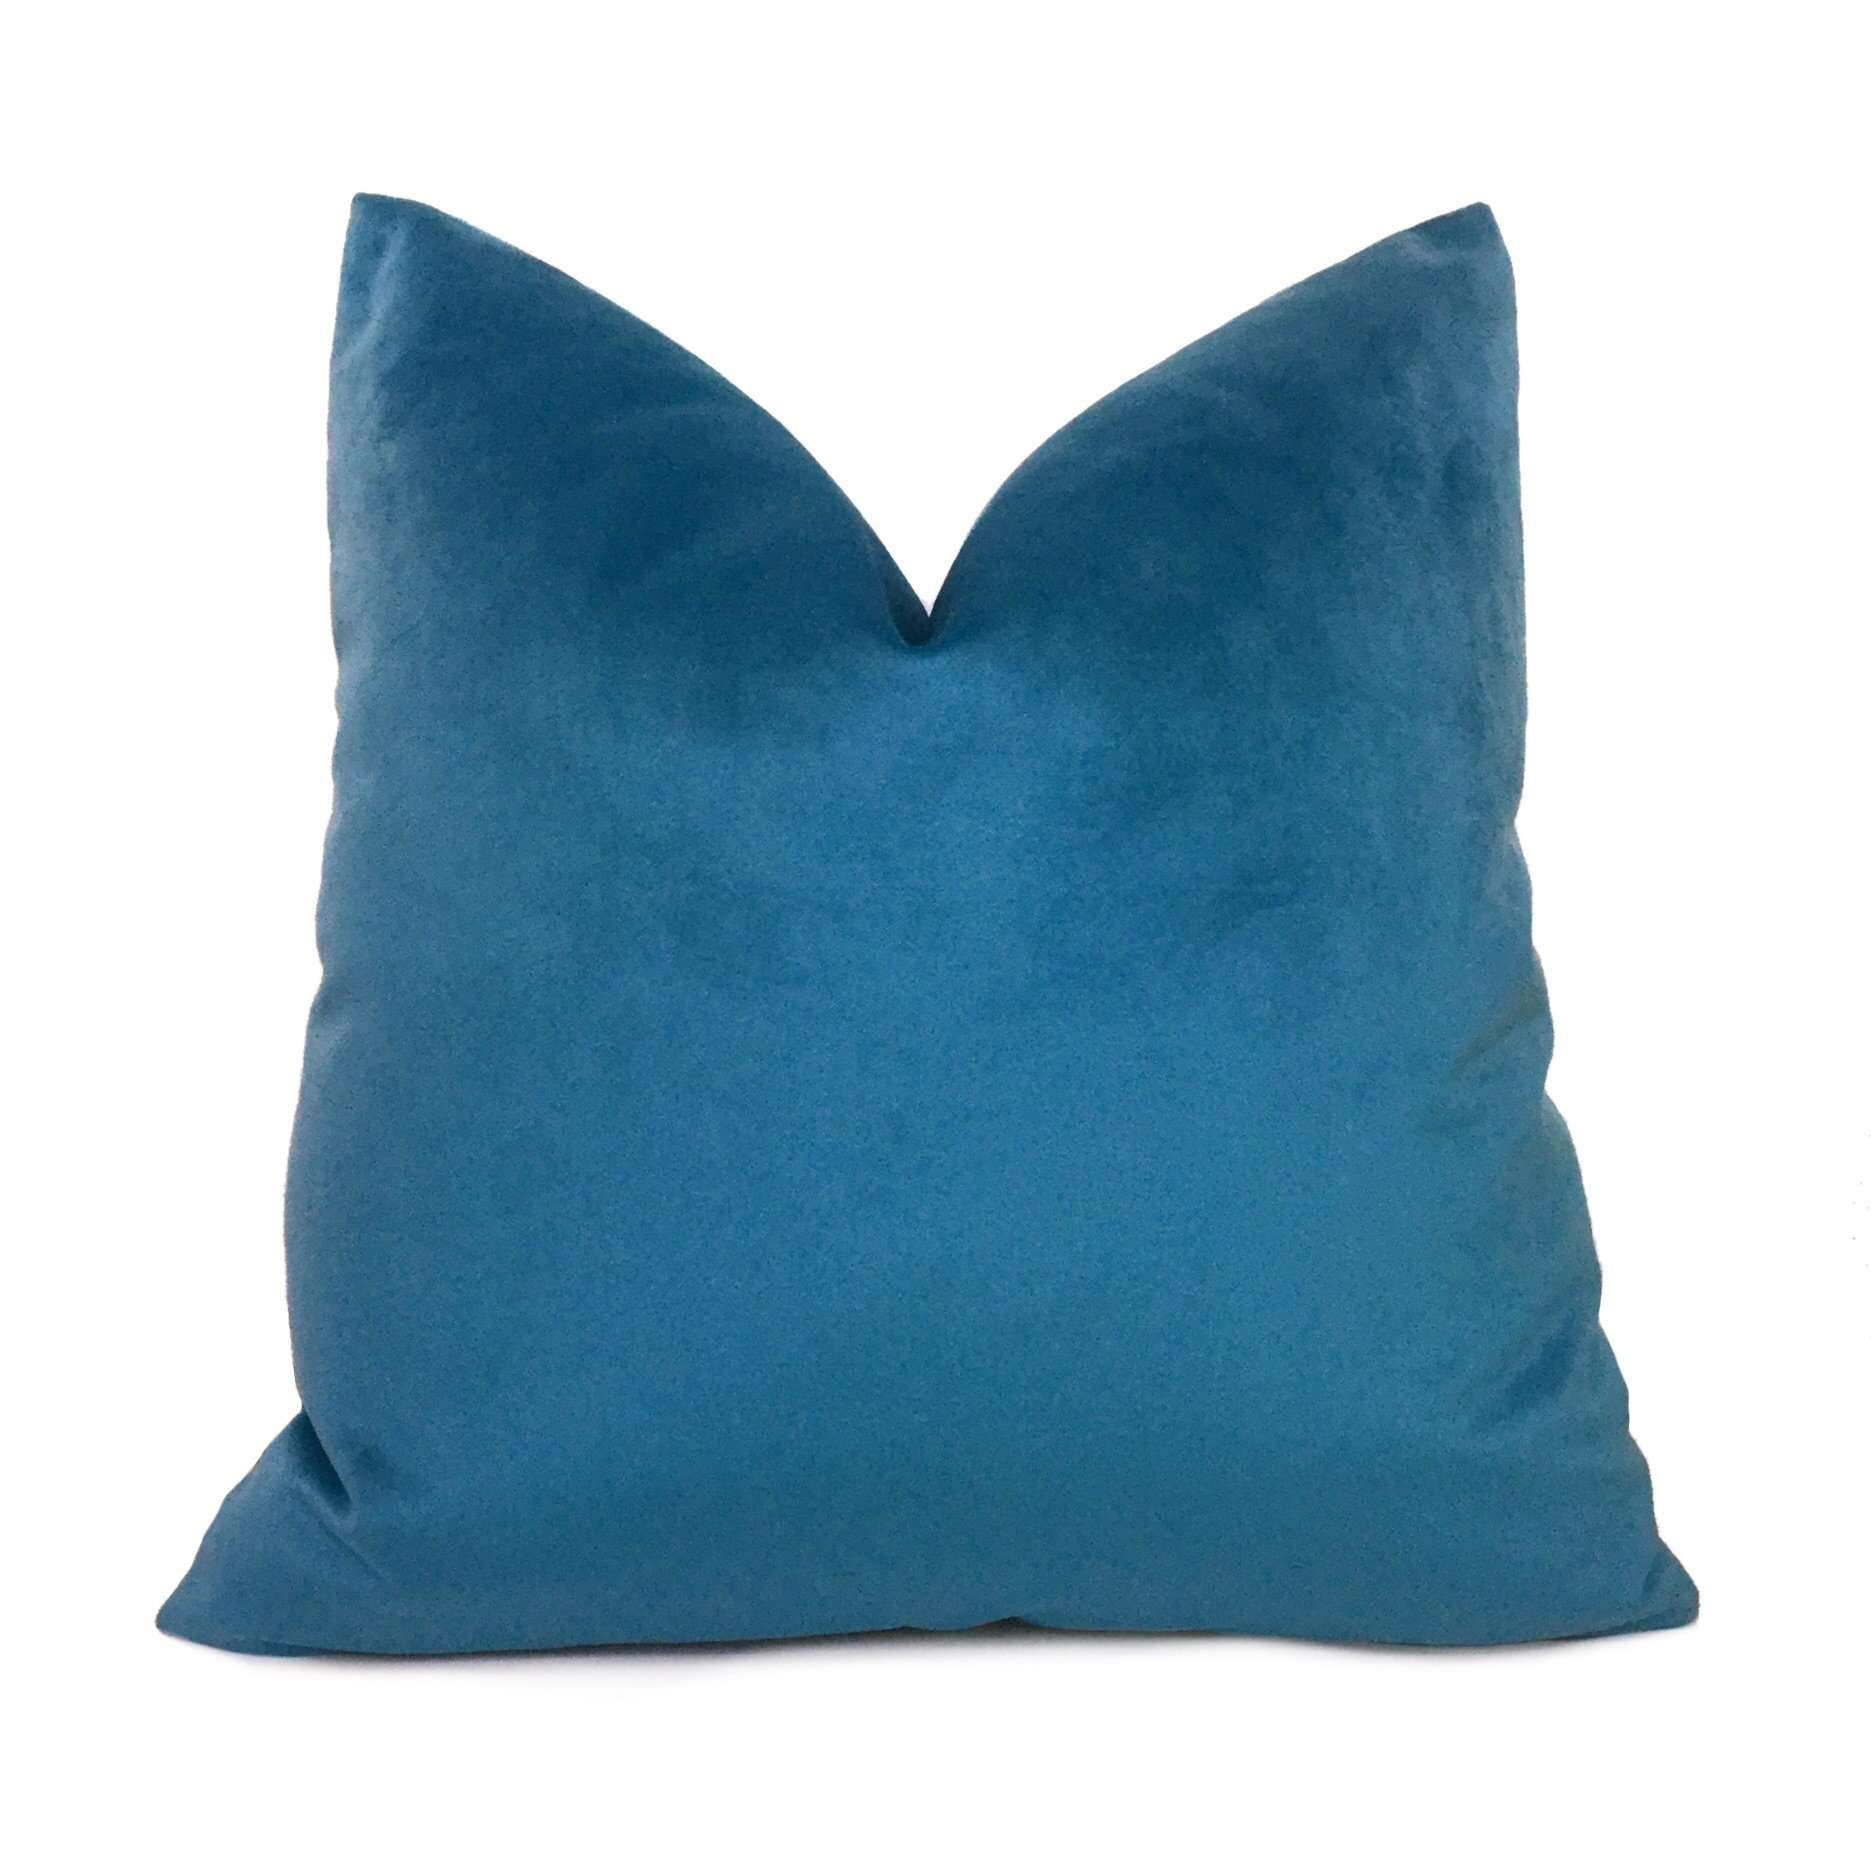 Solid Capri Blue Velvet Pillow Cover Cushion Pillow Case Euro Sham 16x16 18x18 20x20 22x22 24x24 26x26 28x28 Lumbar Pillow 12x18 12x20 12x24 14x20 16x26 by Aloriam